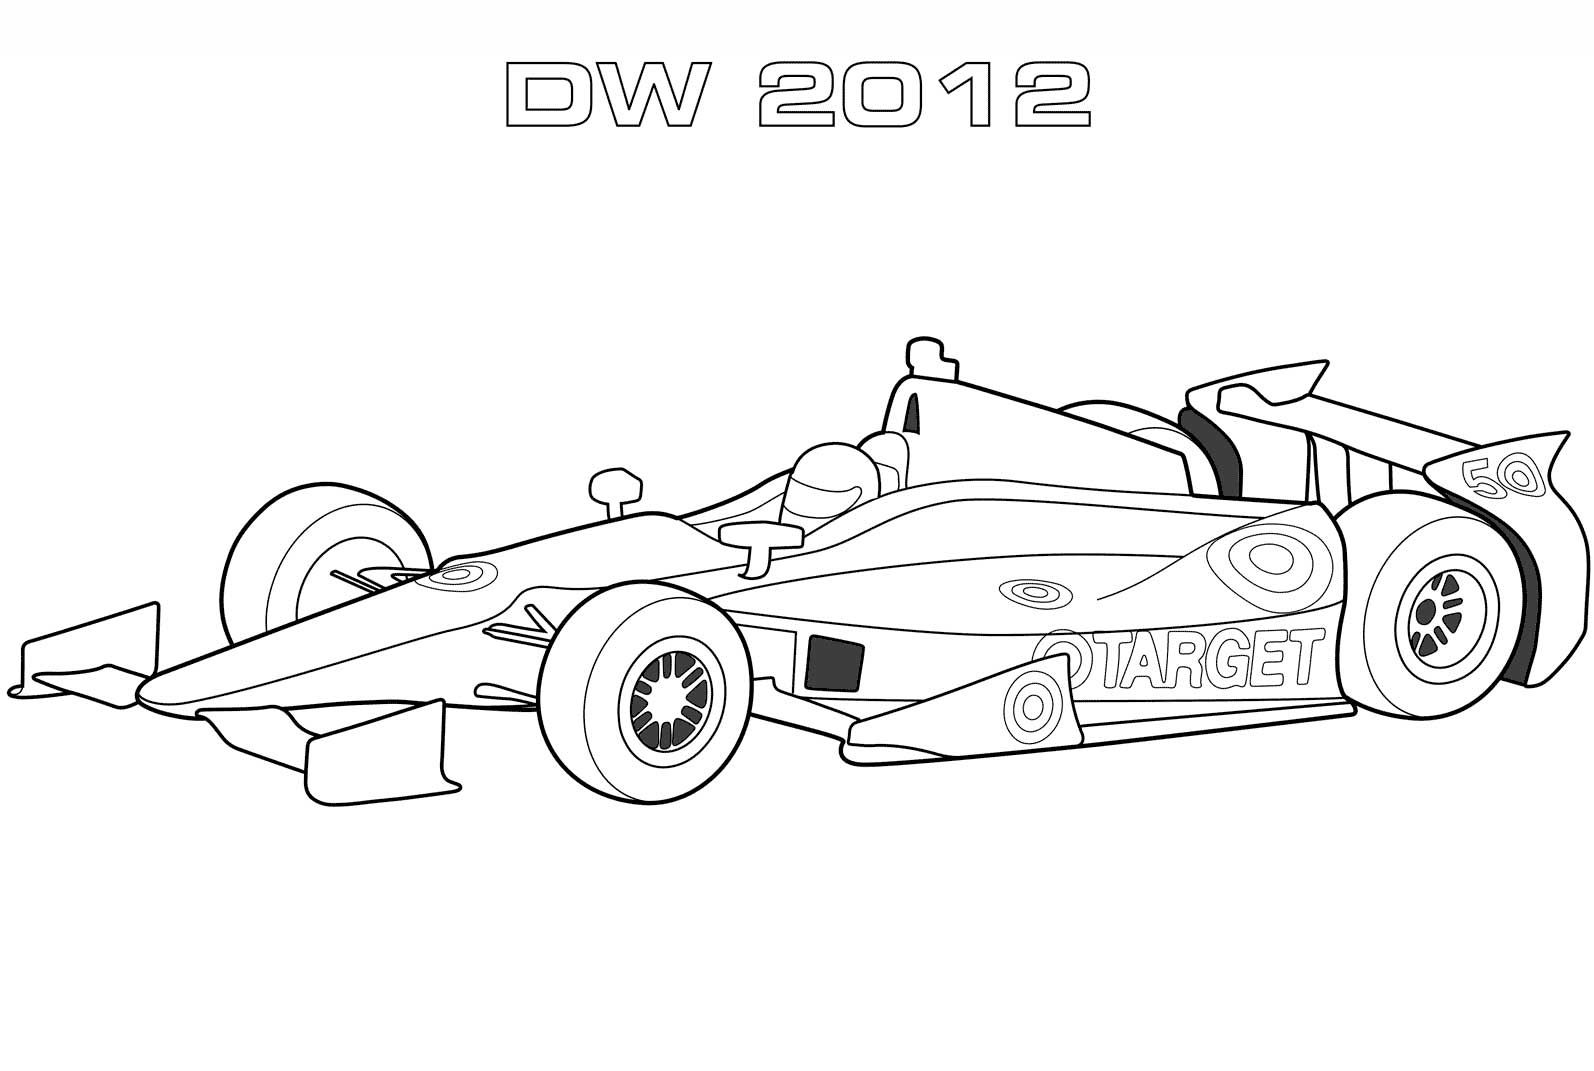 Dallara Dw12 Indy Car Helpful Coloring Race Car Coloring Pages Cars Coloring Pages Sports Coloring Pages